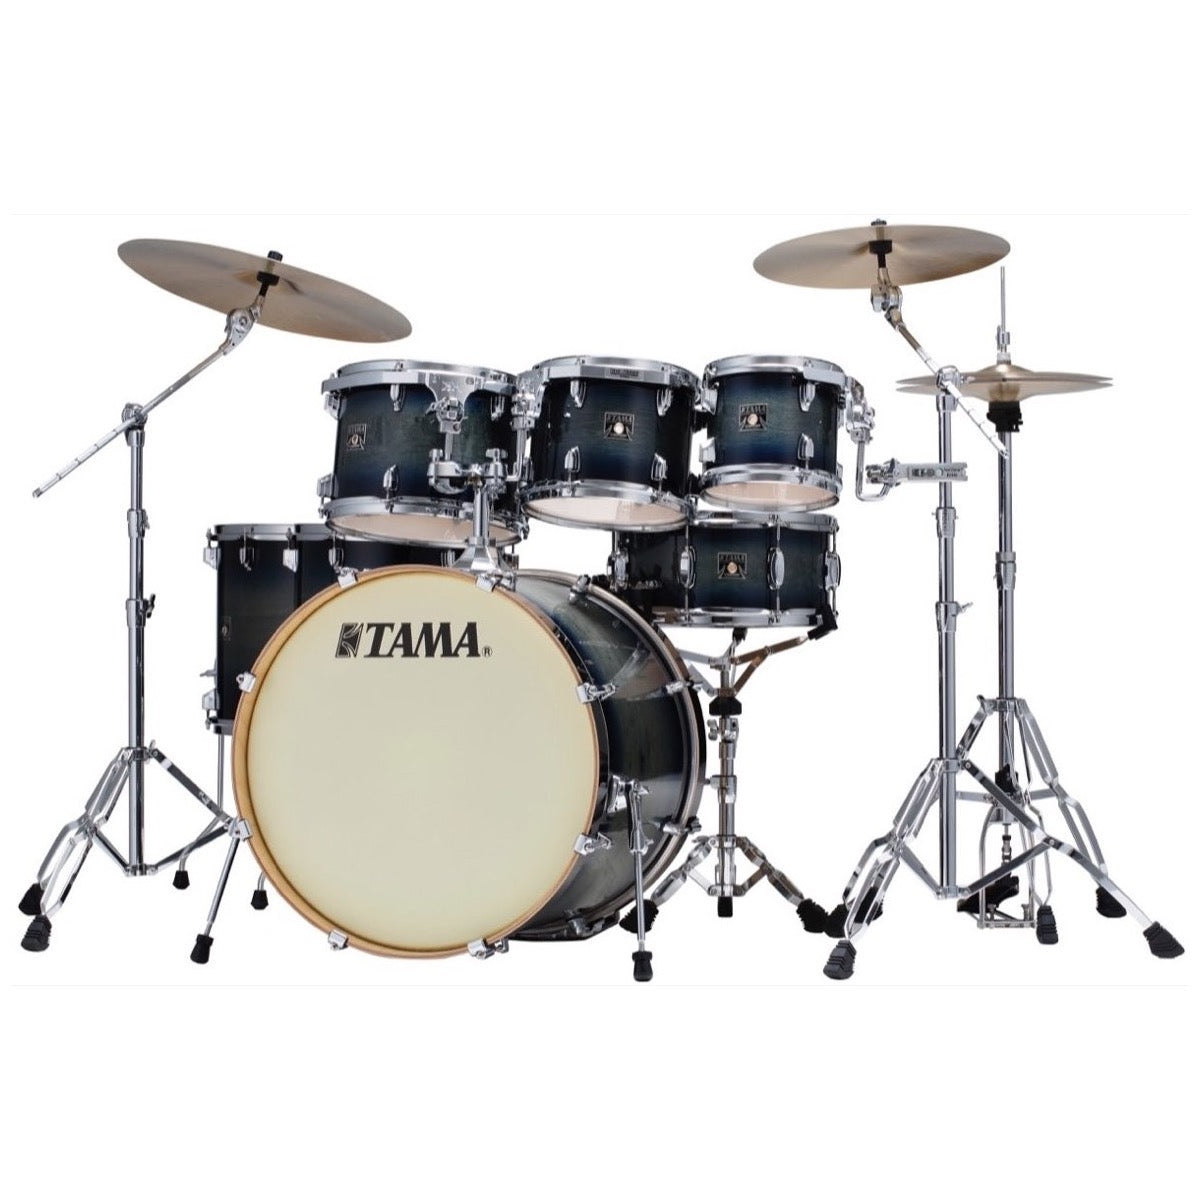 Tama CL72S Superstar Classic Drum Shell Kit, 7-Piece, Dark Indigo Burst